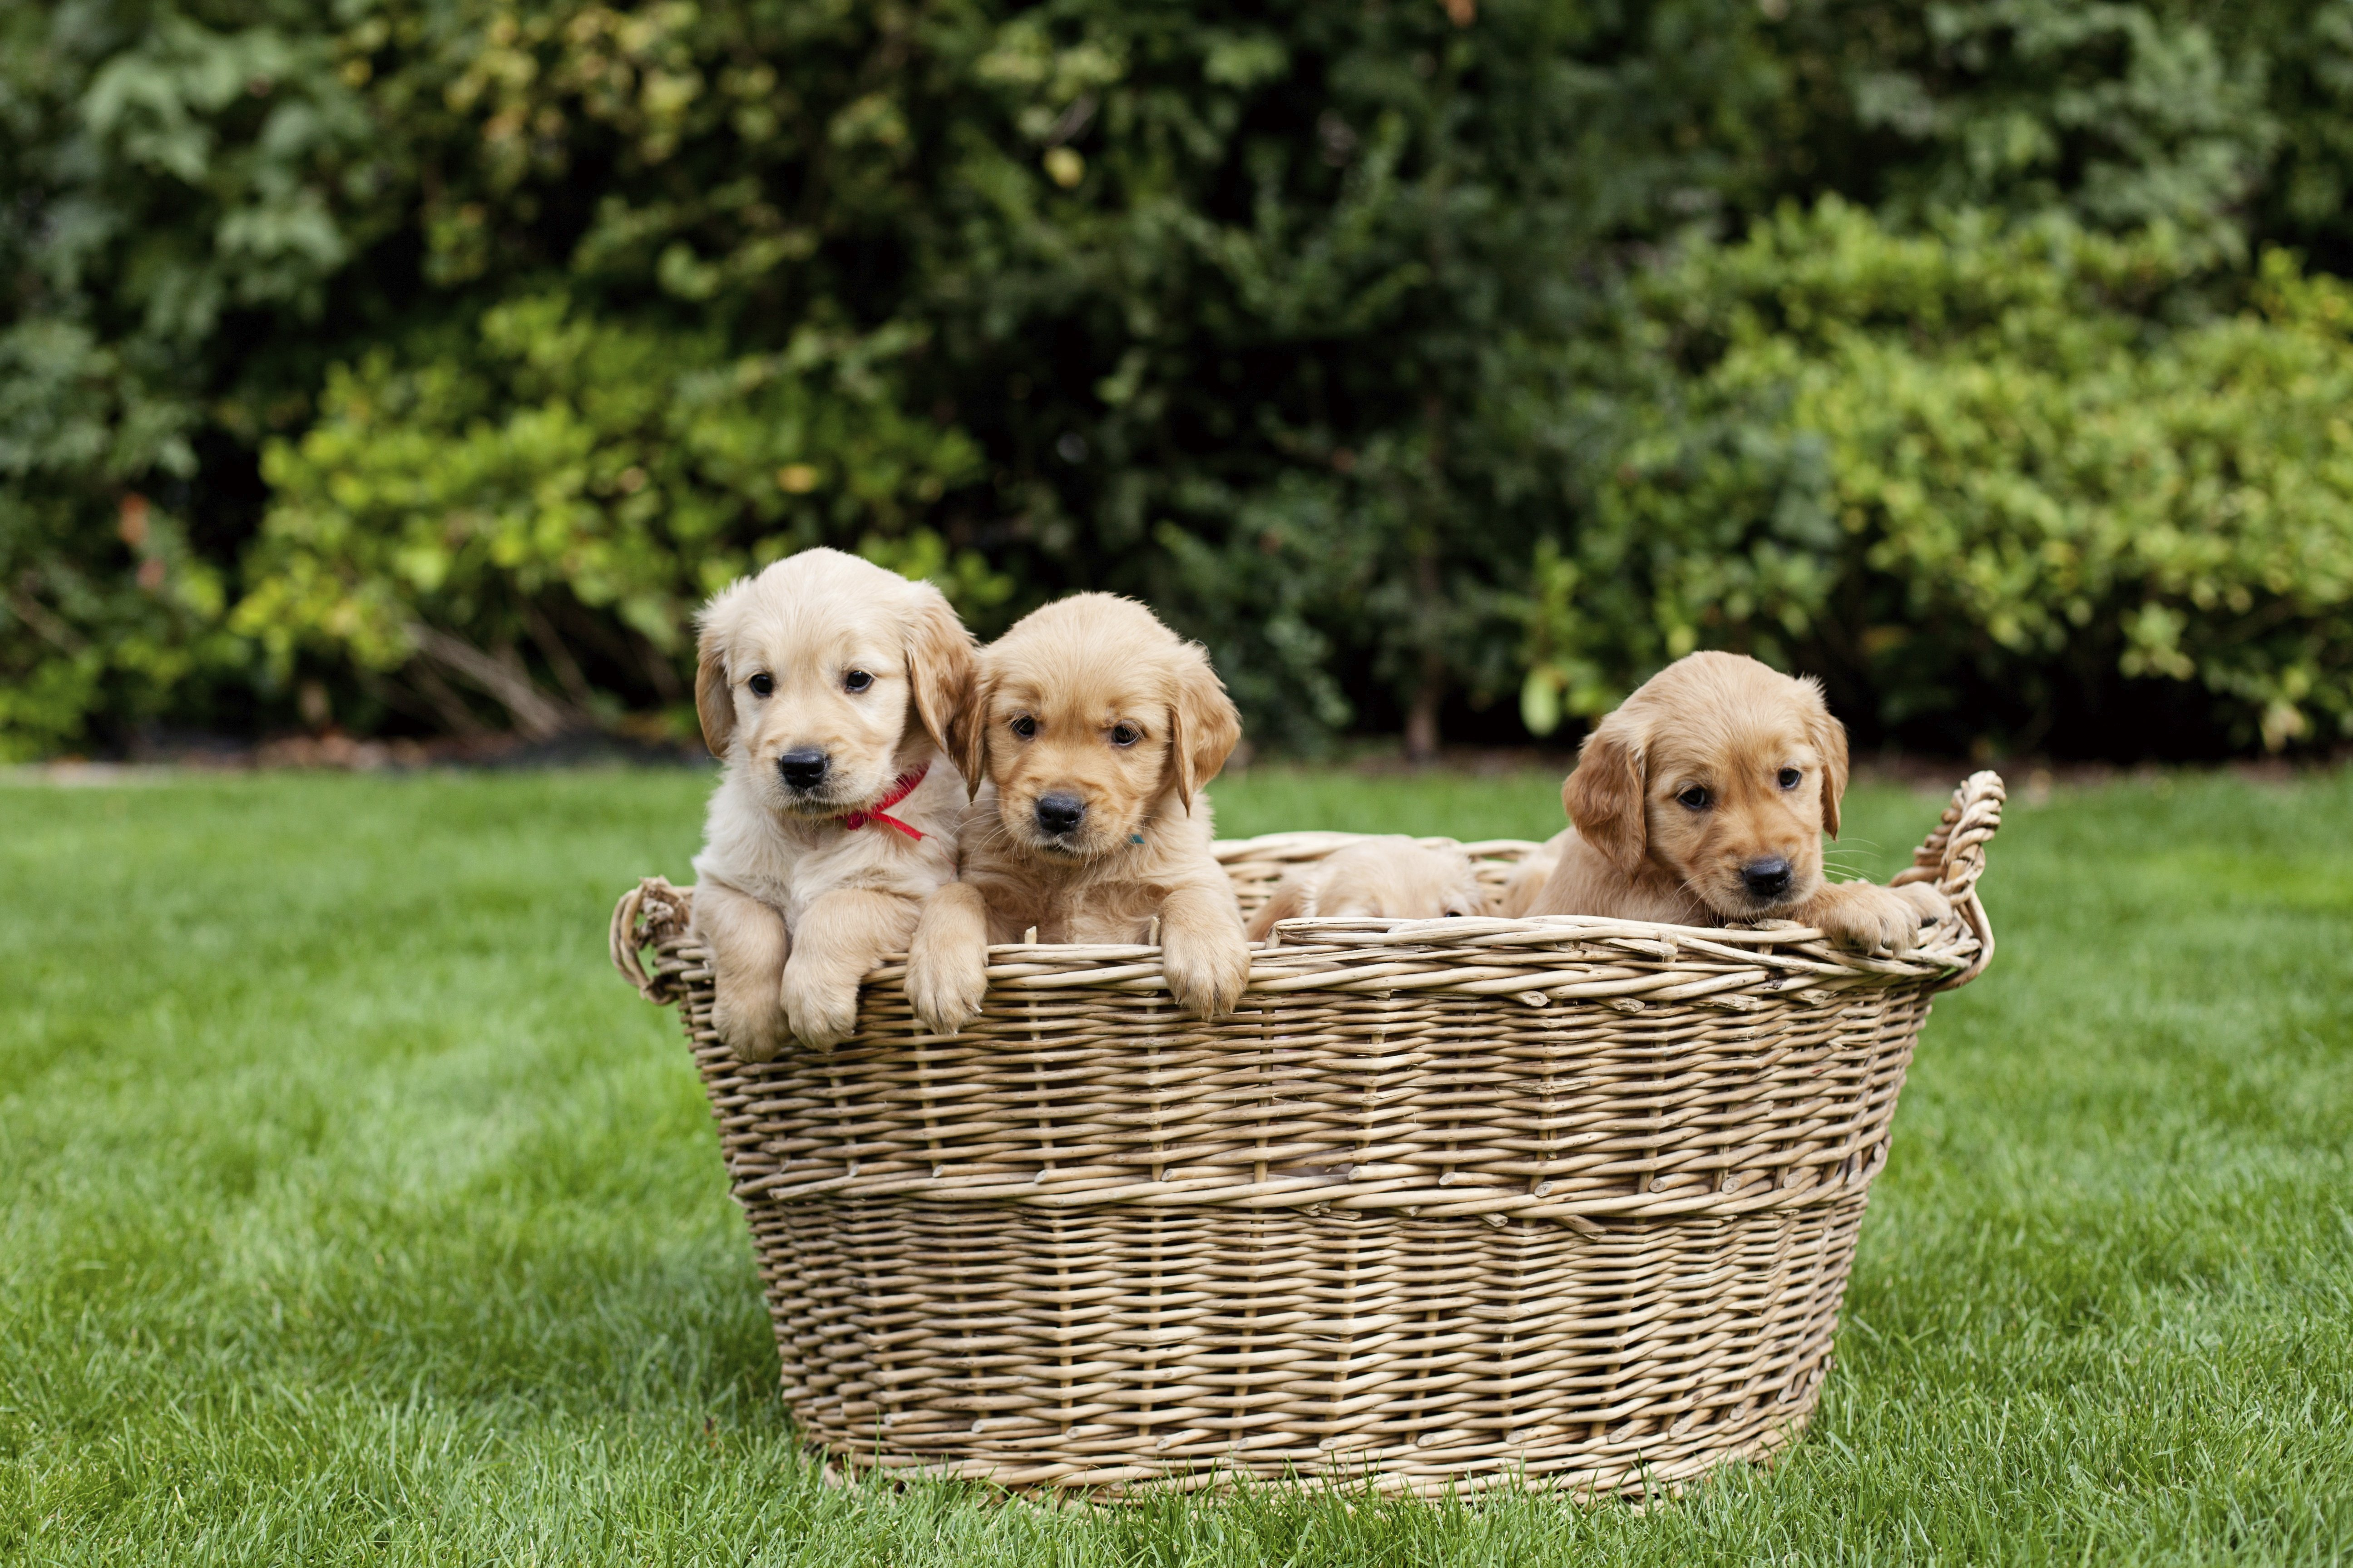 "Cuccioli di Golden retriever in un cestino. ""Title ="" golden-retriever-puppies-in-basket ""width ="" 500 ""caption ="" false ""data-limits ="" true ""style ="" larghezza: 500px; ""srcset ="" https : //blog.hubspot.com/hs-fs/hubfs/golden-retriever-puppies-basket.jpg? larghezza = 250 & nome = golden-retriever-puppies-basket.jpg 250w, https://blog.hubspot.com/ hs-fs / hubfs / golden-retriever-puppies-basket.jpg? larghezza = 500 & nome = golden-retriever-puppies-basket.jpg 500w, https://blog.hubspot.com/hs-fs/hubfs/golden-retriever -puppies-basket.jpg? larghezza = 750 & nome = golden-retriever-puppies-basket.jpg 750w, https://blog.hubspot.com/hs-fs/hubfs/golden-retriever-puppies-basket.jpg?width= 1000 & name = golden-retriever-puppies-basket.jpg 1000w, https://blog.hubspot.com/hs-fs/hubfs/golden-retriever-puppies-basket.jpg?width=1250&name=golden-retriever-puppies-basket .jpg 1250w, https://blog.hubspot.com/hs-fs/hubfs/golden-retriever-puppies-basket.jpg?width=1500&name=golden-retriever-puppies-basket.jpg 1500w ""size ="" (max -width: 500px) 100vw, 500px"